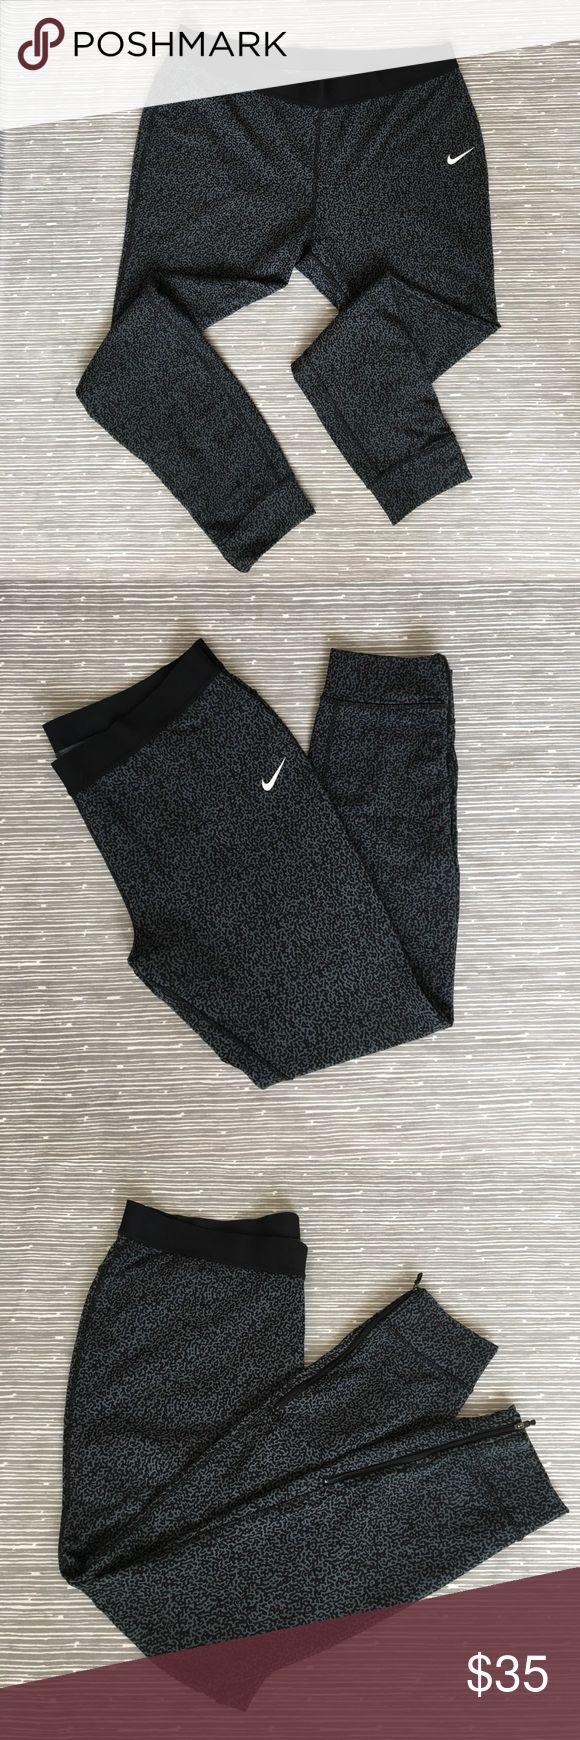 Nike Leopard Print Tennis Pants These tapered pants are in great used condition. They have zippers at the cuff for easy on/off over your sneakers. There is a deep pocket on the left side. Nike Pants Track Pants & Joggers